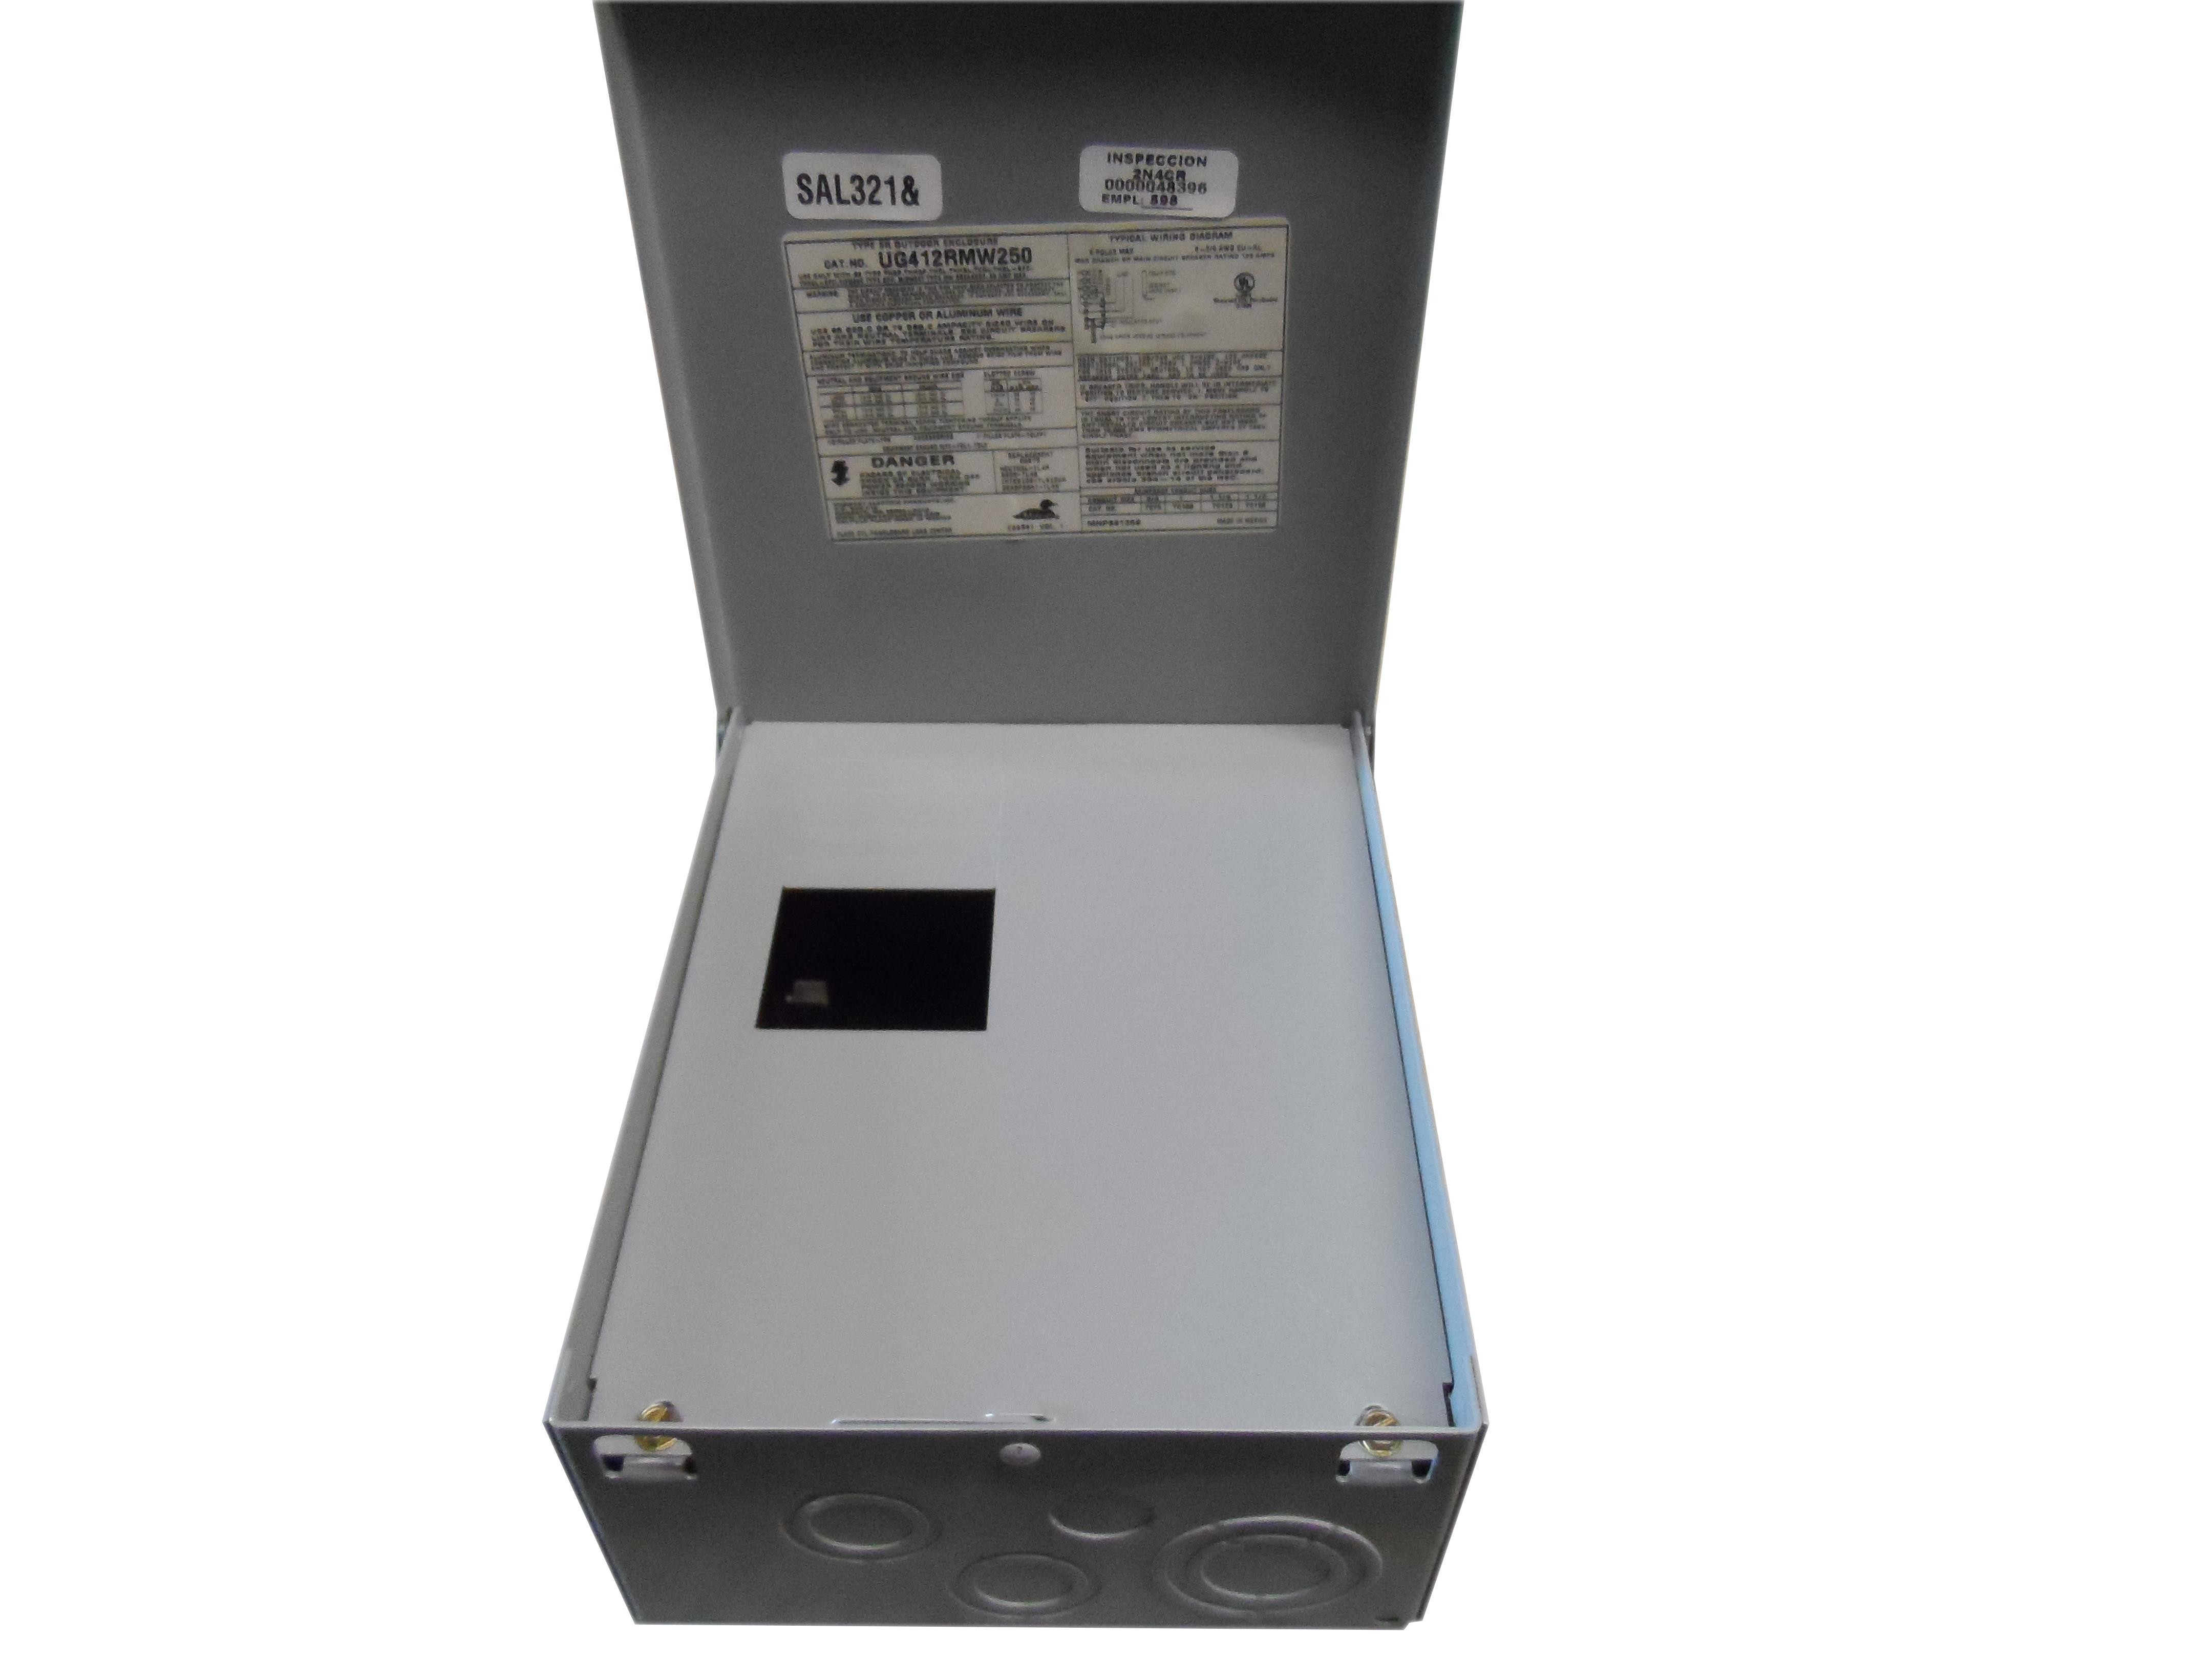 Details about MIDWEST UG412RMW260 N 60A 240V 1P NEW on